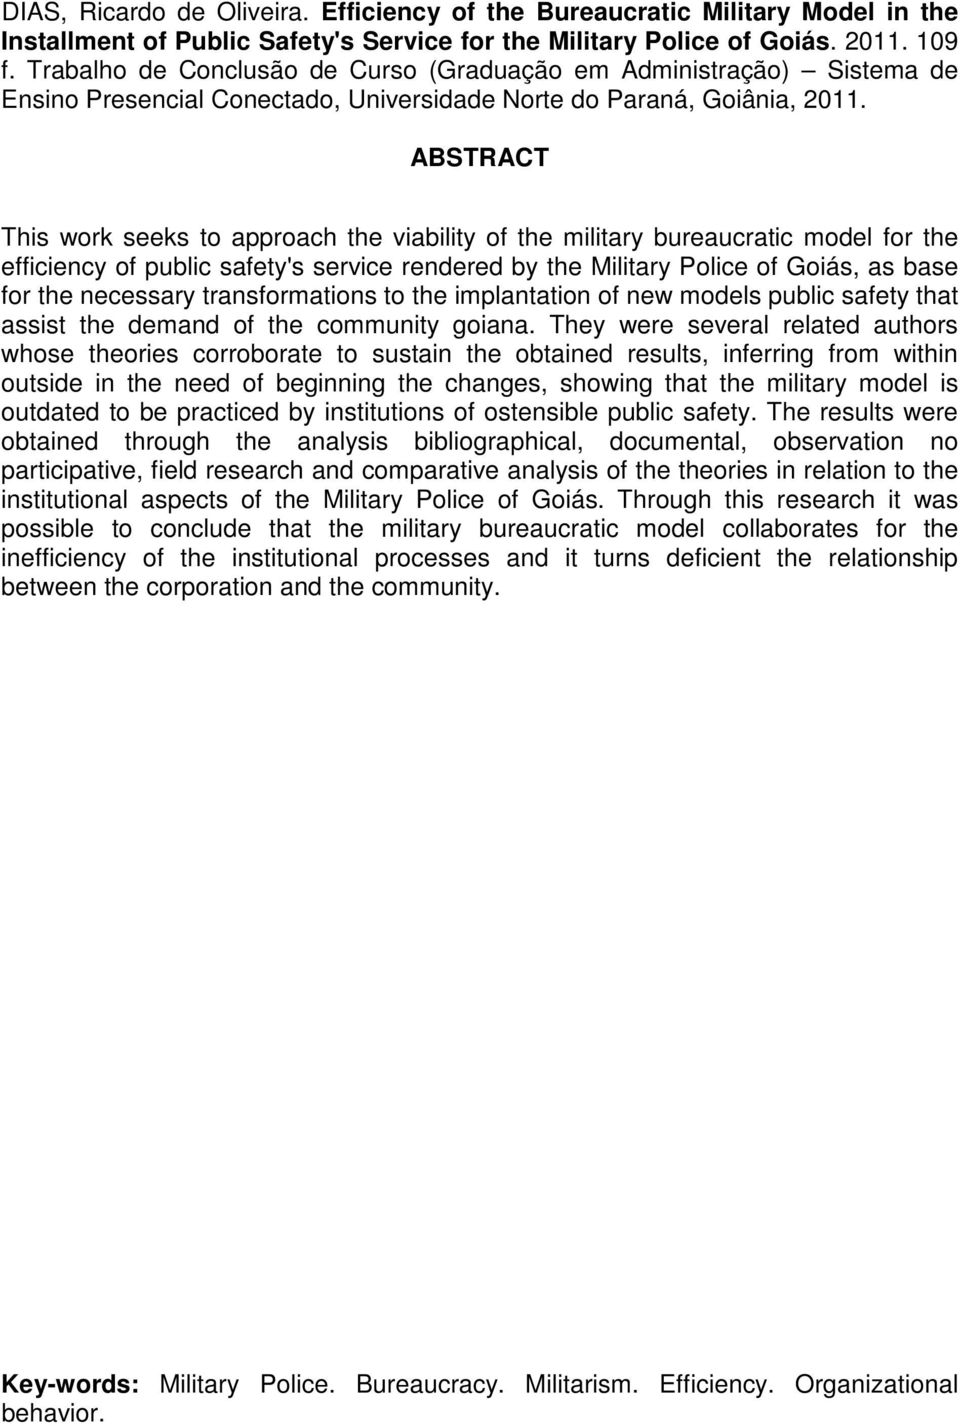 ABSTRACT This work seeks to approach the viability of the military bureaucratic model for the efficiency of public safety's service rendered by the Military Police of Goiás, as base for the necessary